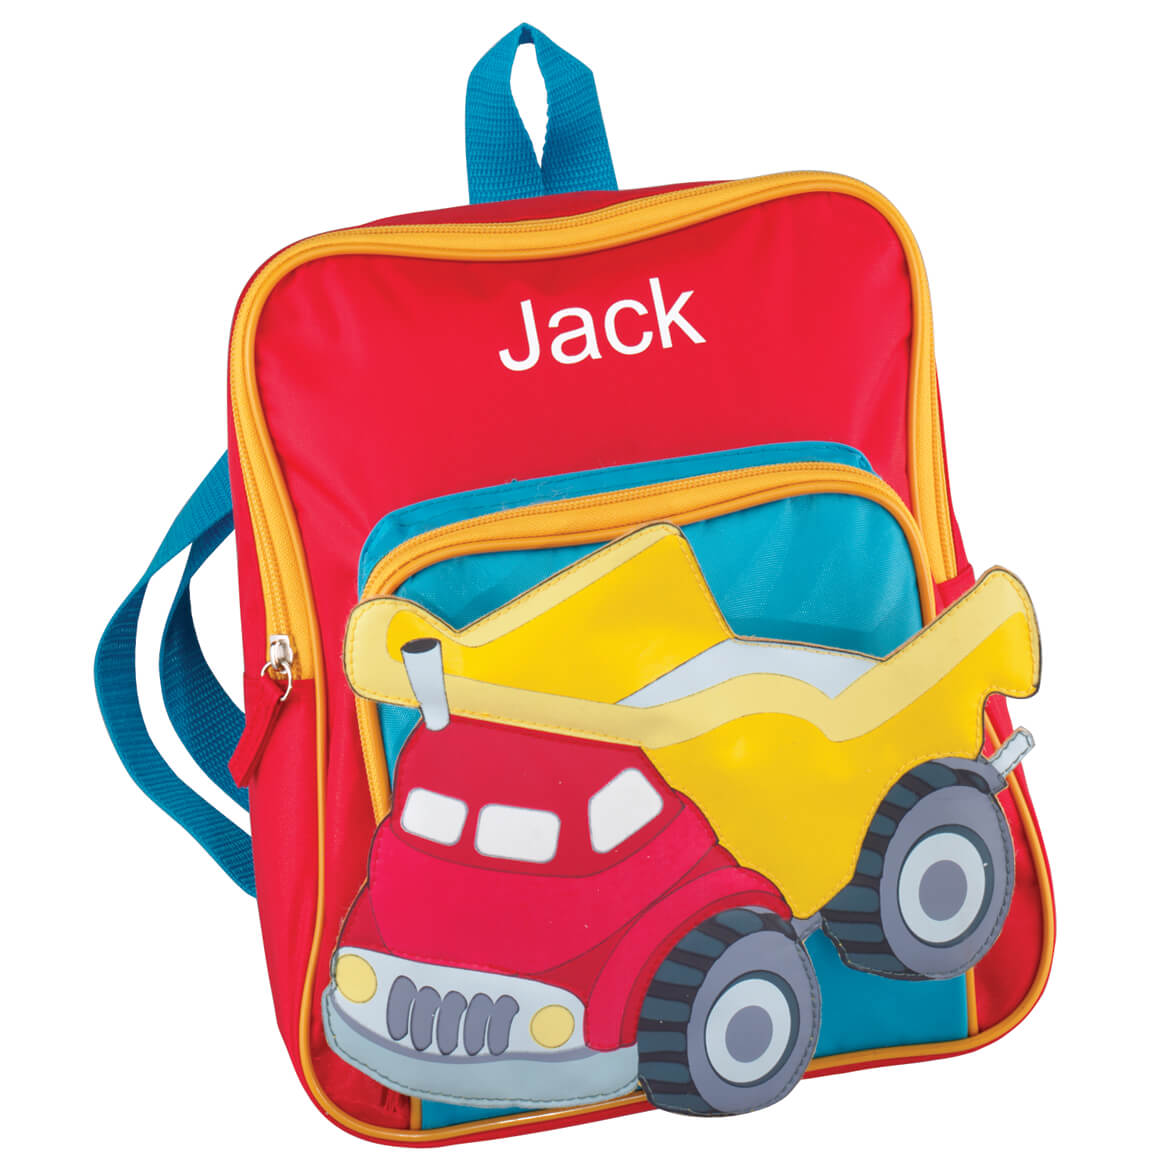 d12646fb8a1 Personalized Truck Backpack - Personalized Backpack - Miles Kimball